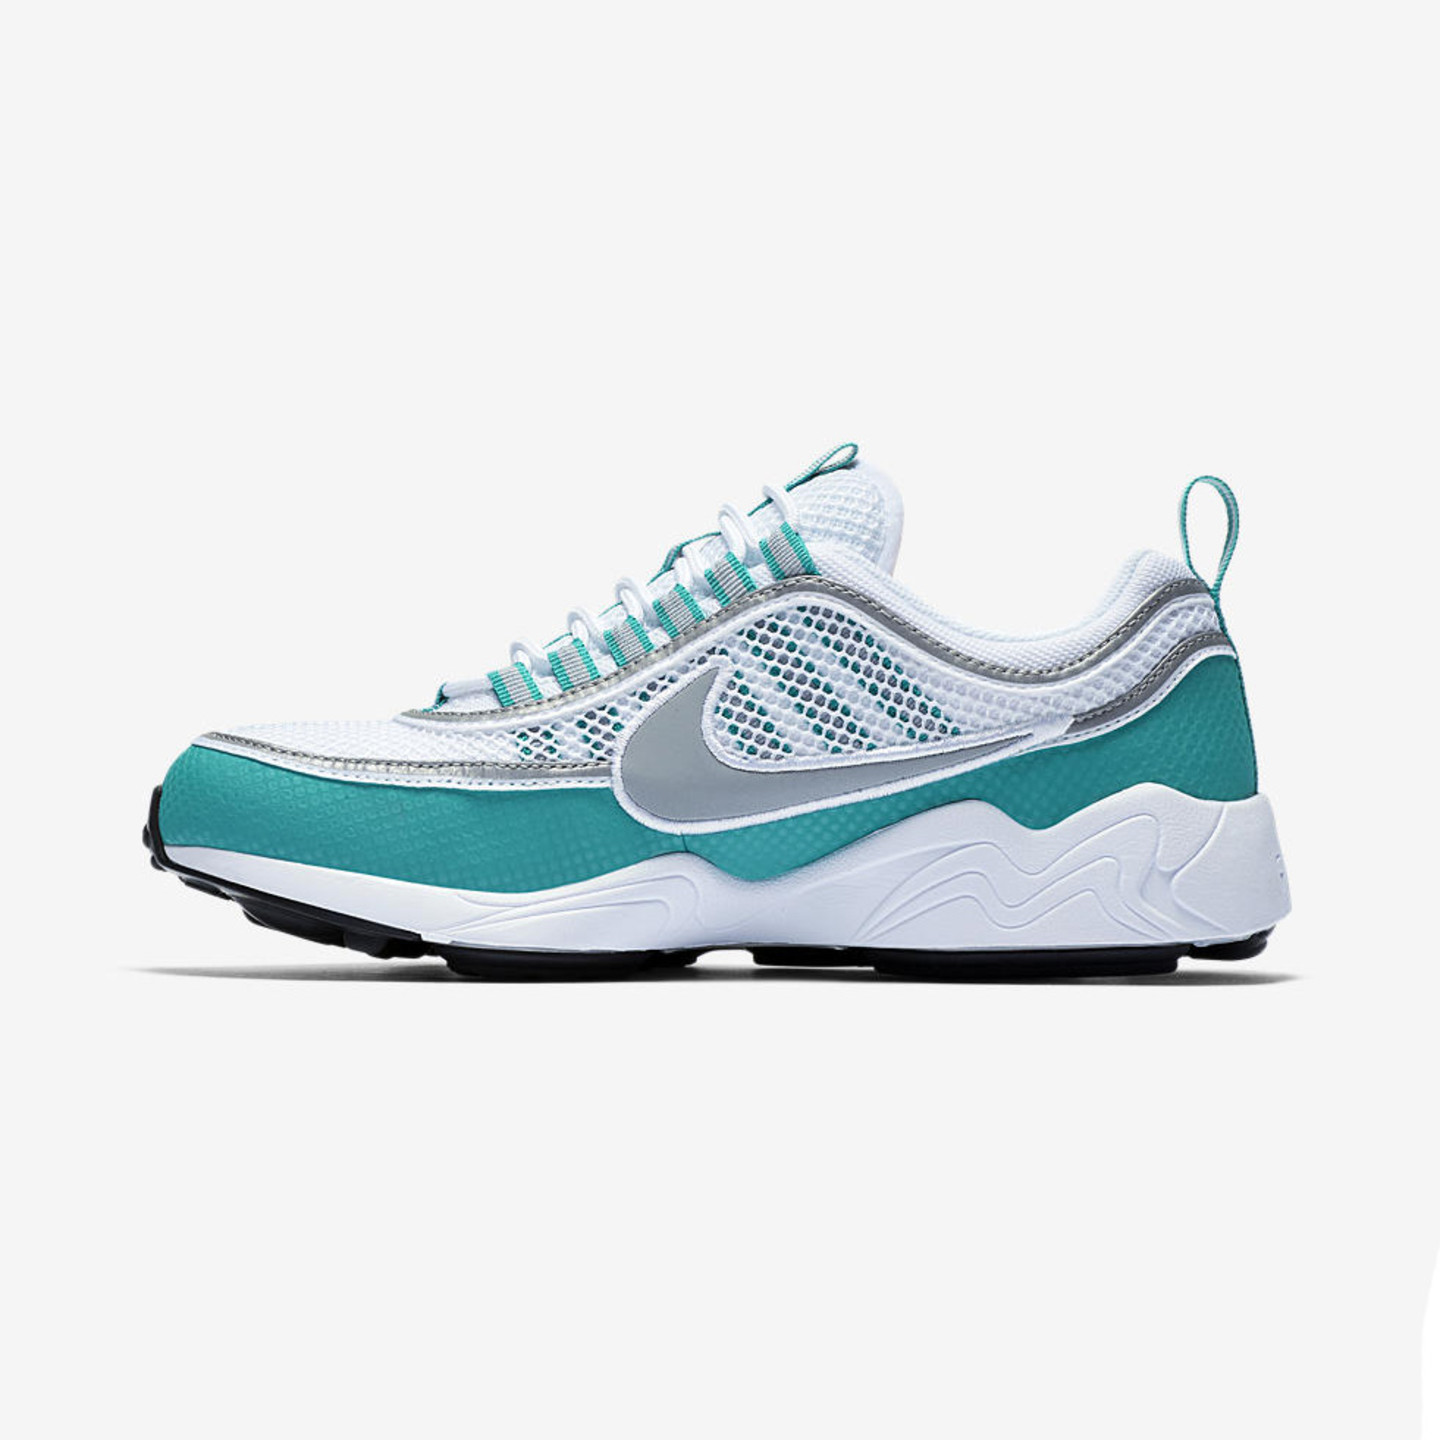 Nike Air Zoom Spiridon White / Silver / Turbo Green / Laser Orange 849776-102-41